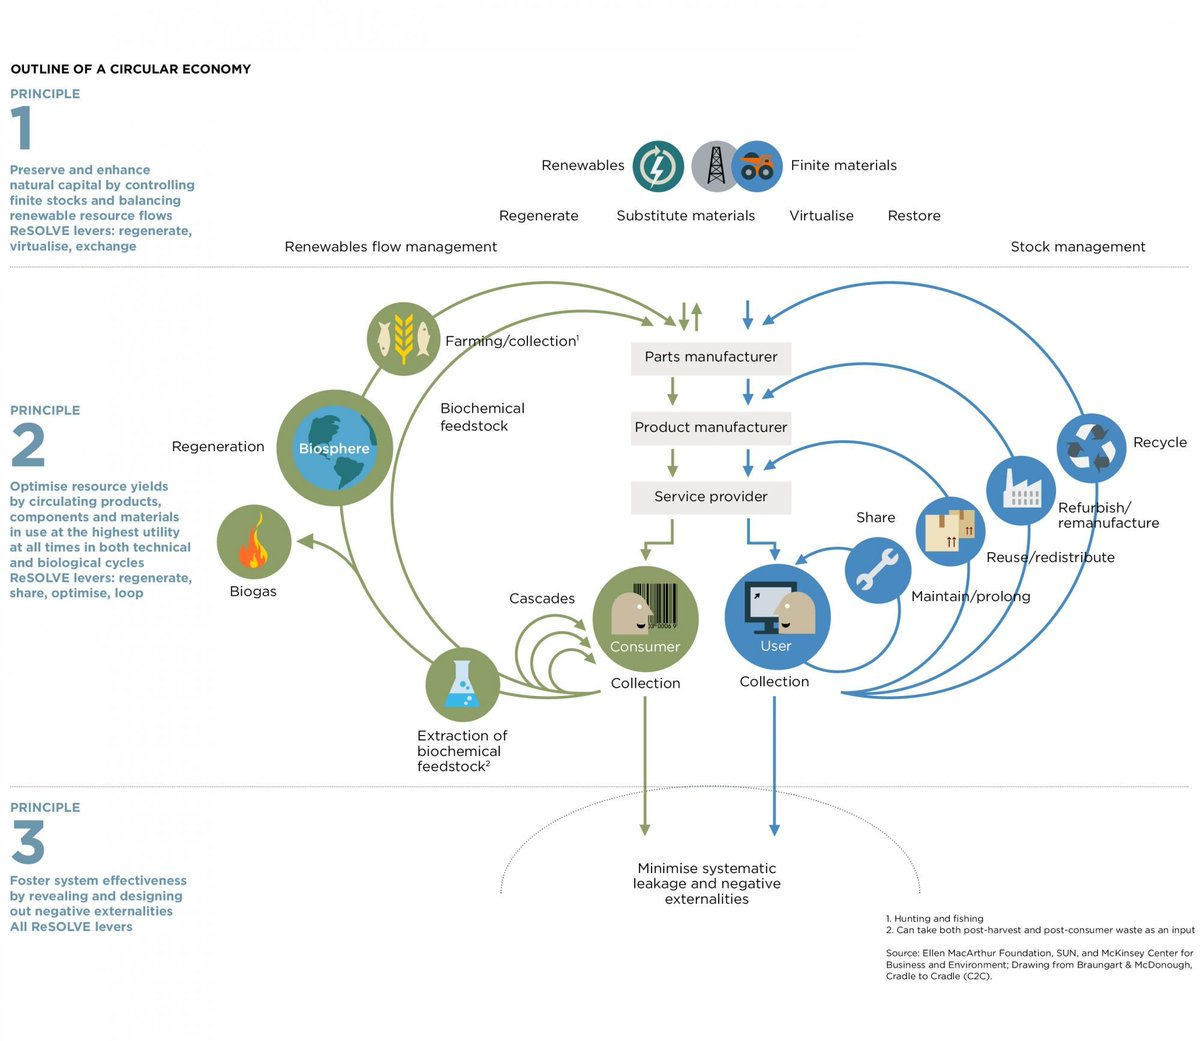 Ellen Macarthur Fdn On Twitter What Is The Circulareconomy Free Download Ex Series Wiring Diagram Explore A Model That Distinguishes Between Technical And Biological In Our Butterfly Https Tco Rilprtiv3j Cy01pny0a3